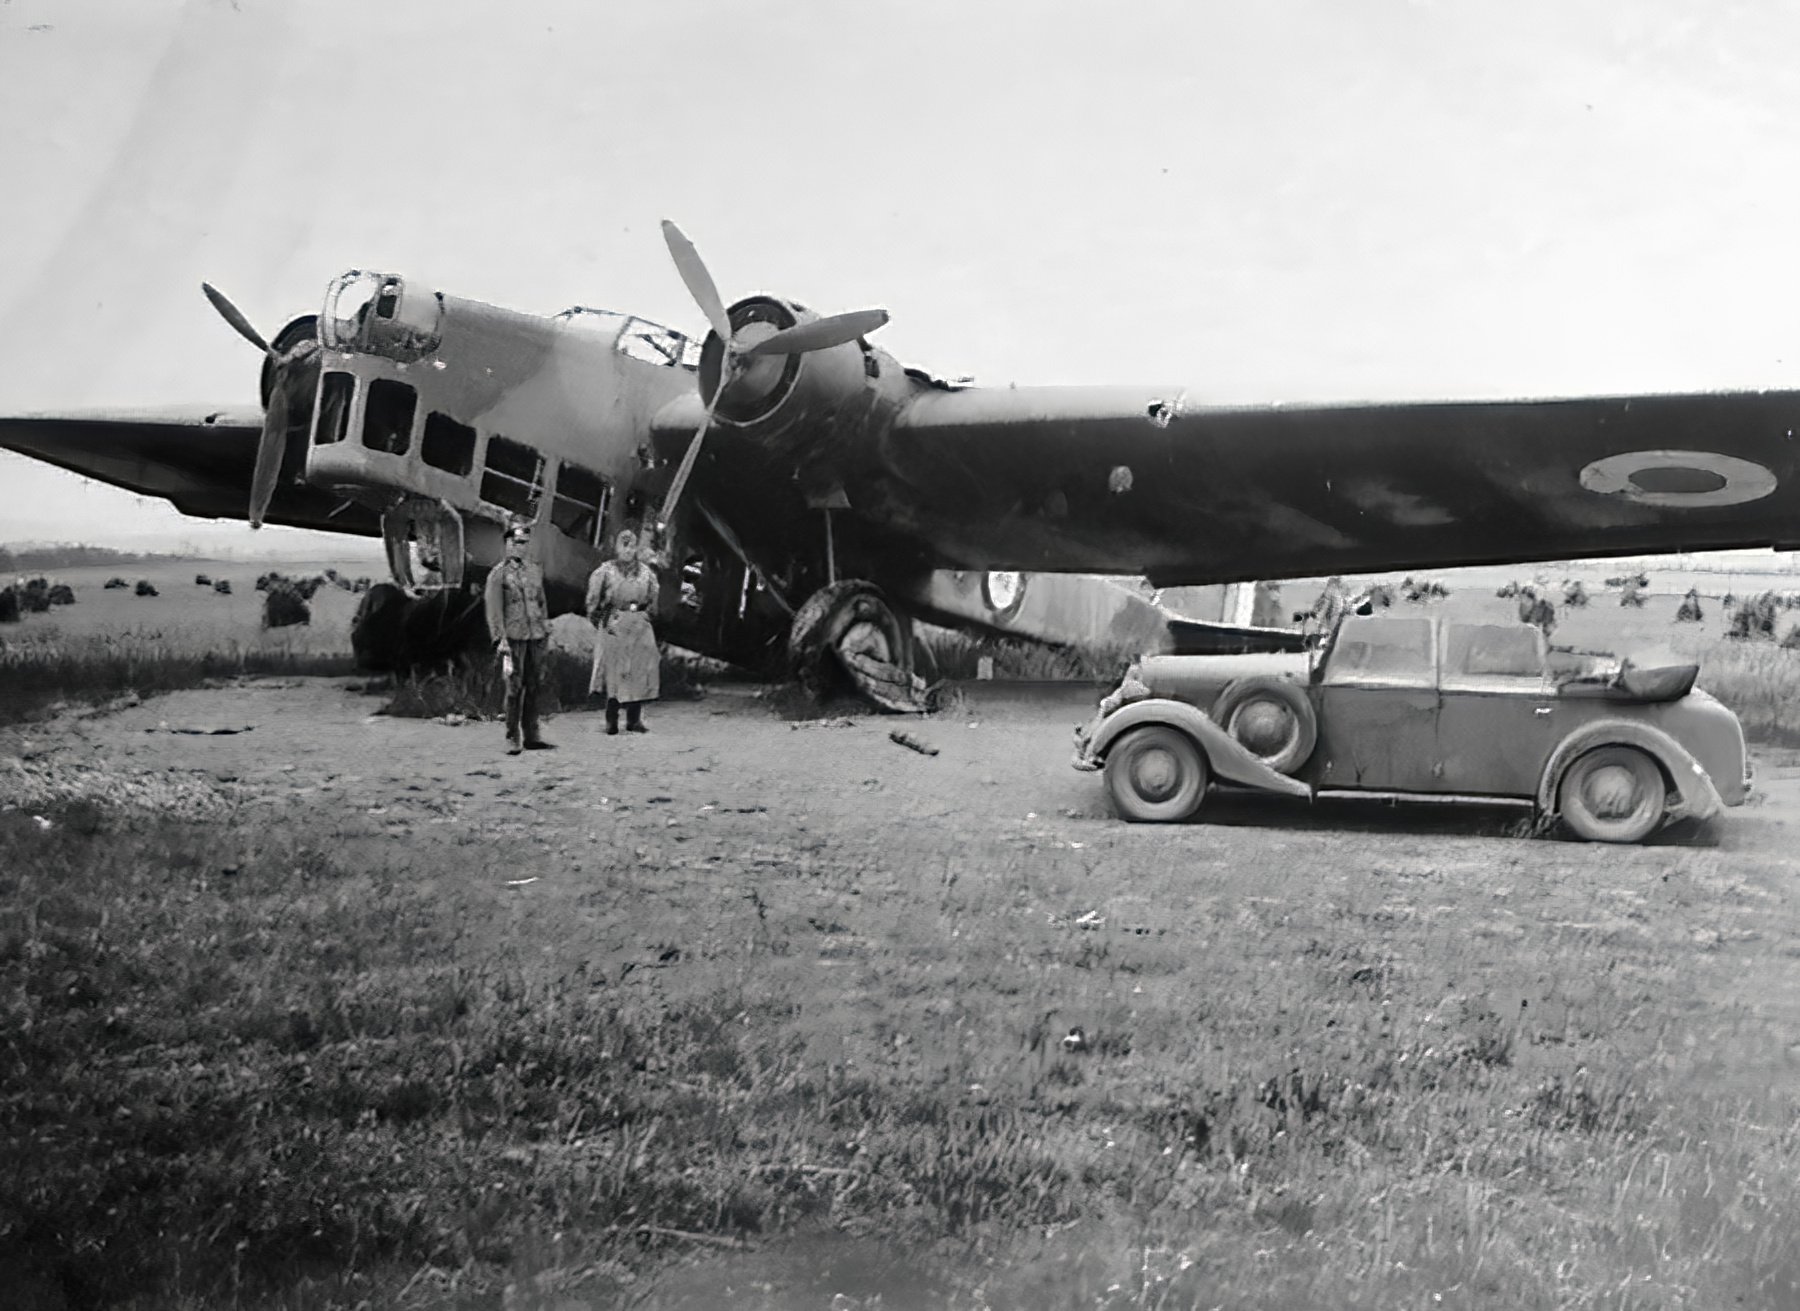 French Airforce Amiot 143 sits abandoned after the fall of France June 1940 ebay 05